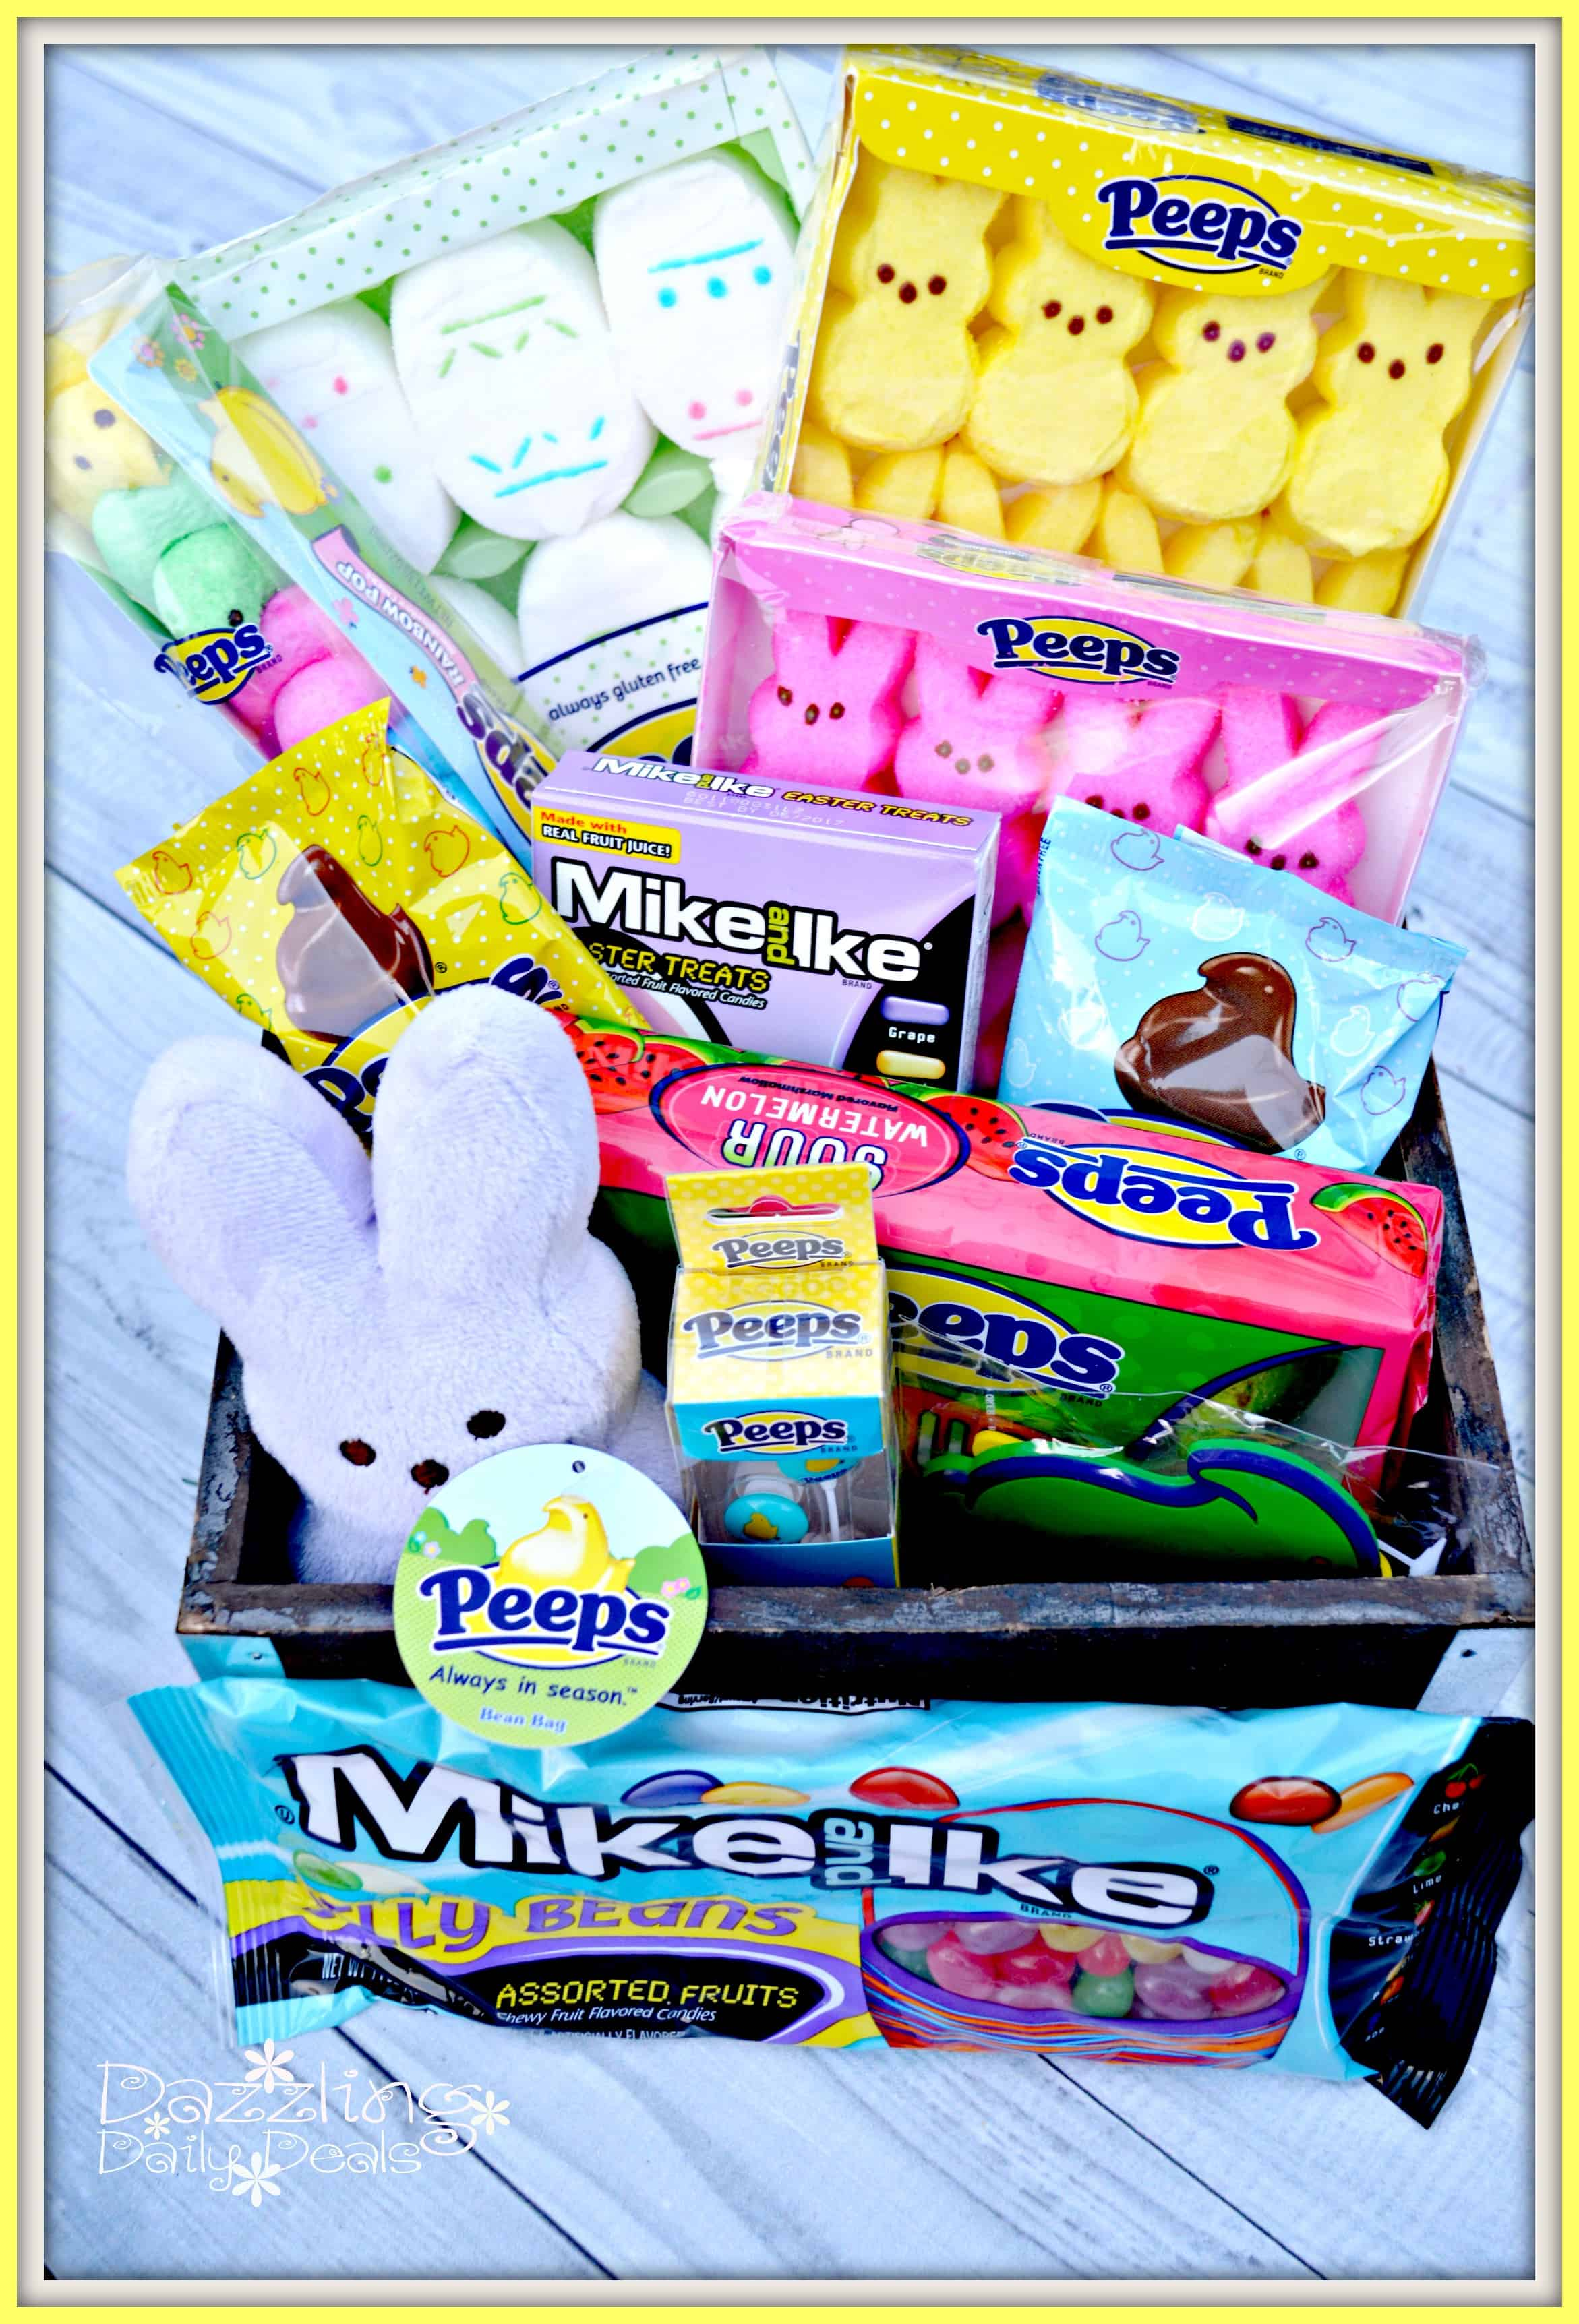 Costco Easter Baskets: PEEPS Are A Must For Every Easter Basket #PEEPSEASTER #ad